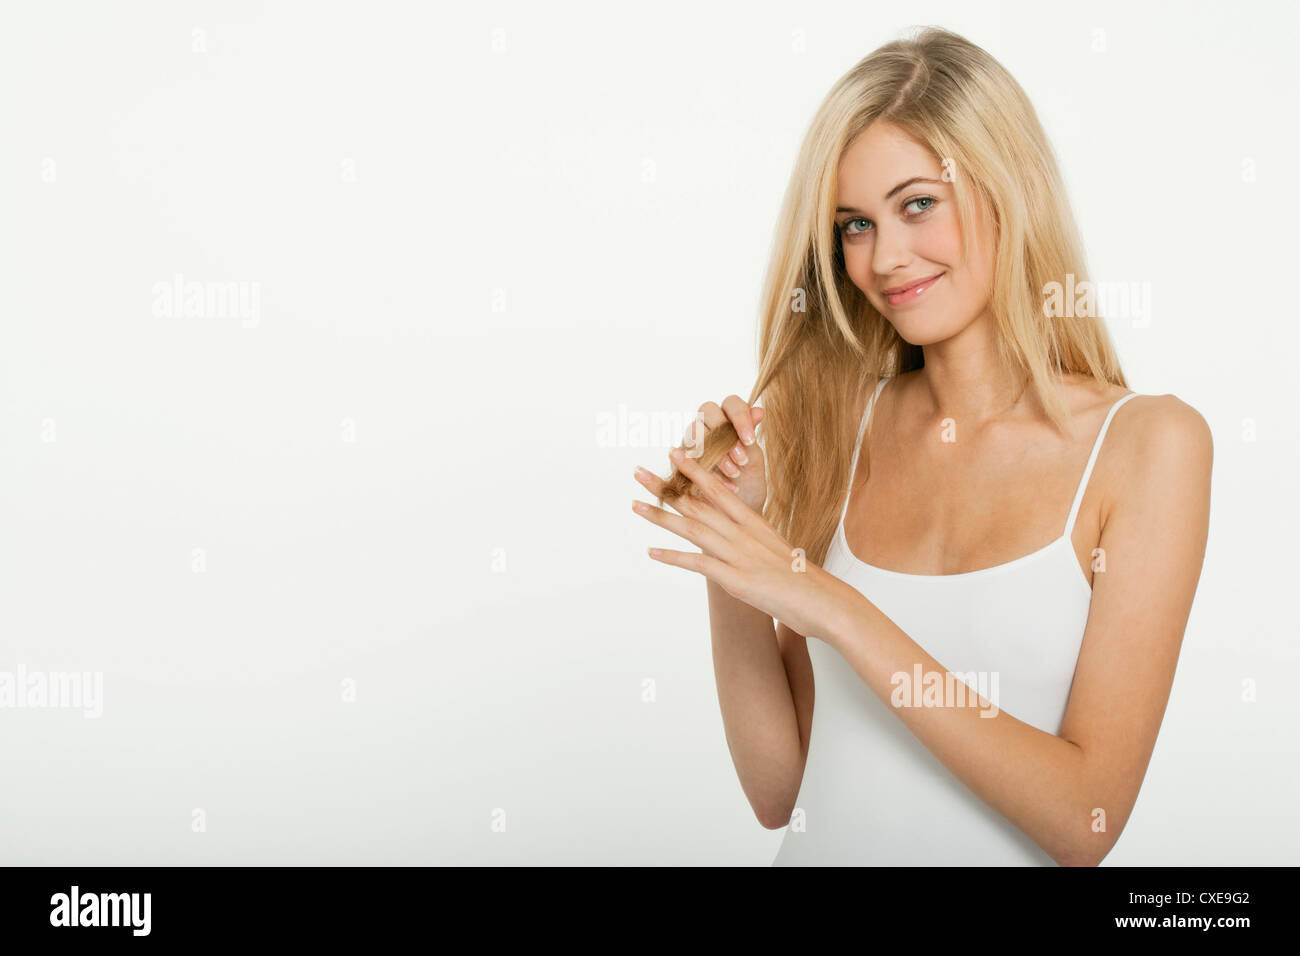 Teen girl running her fingers through the ends of her hair - Stock Image